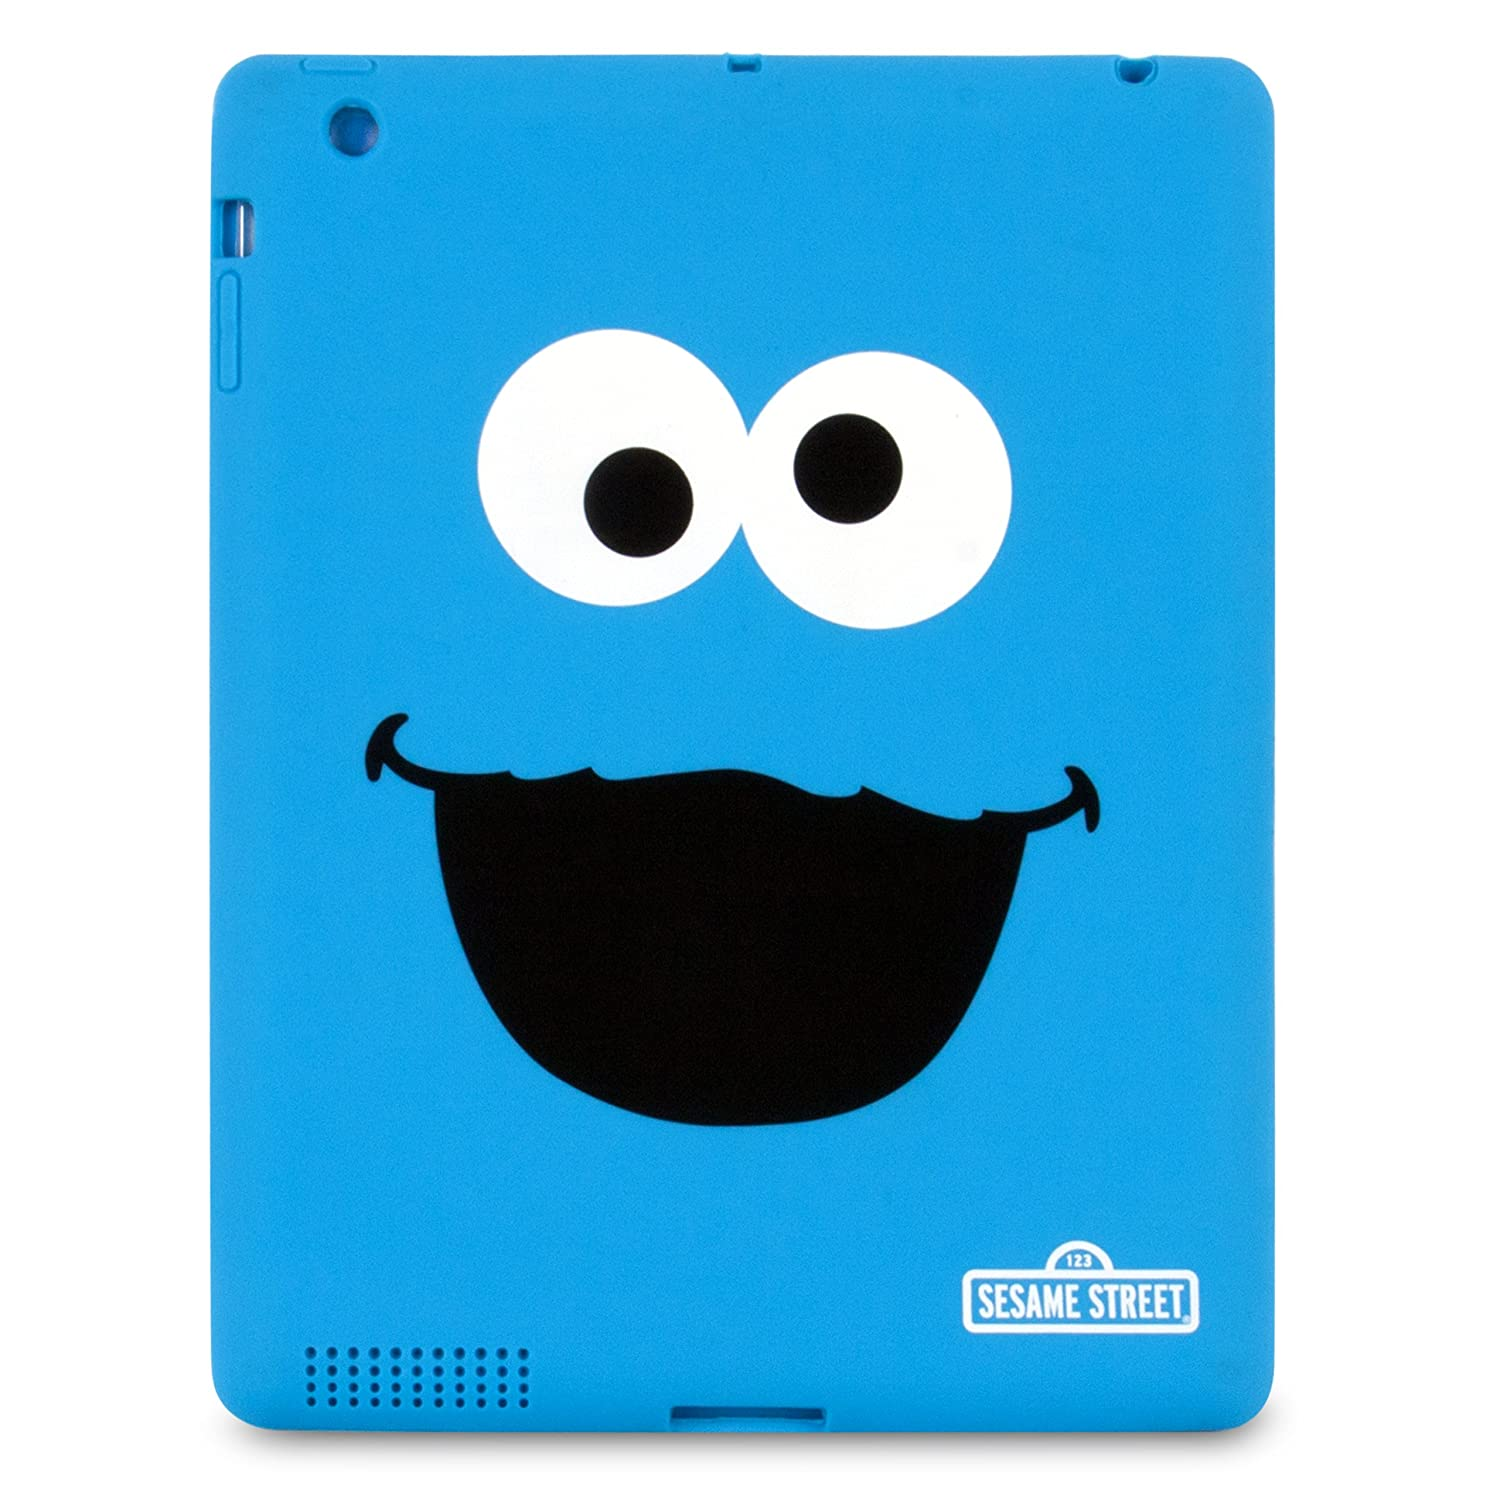 Amazon ISound Sesame Street Cookie Monster TPU Case For IPad 2 And 3rd 4th Generation Computers Accessories